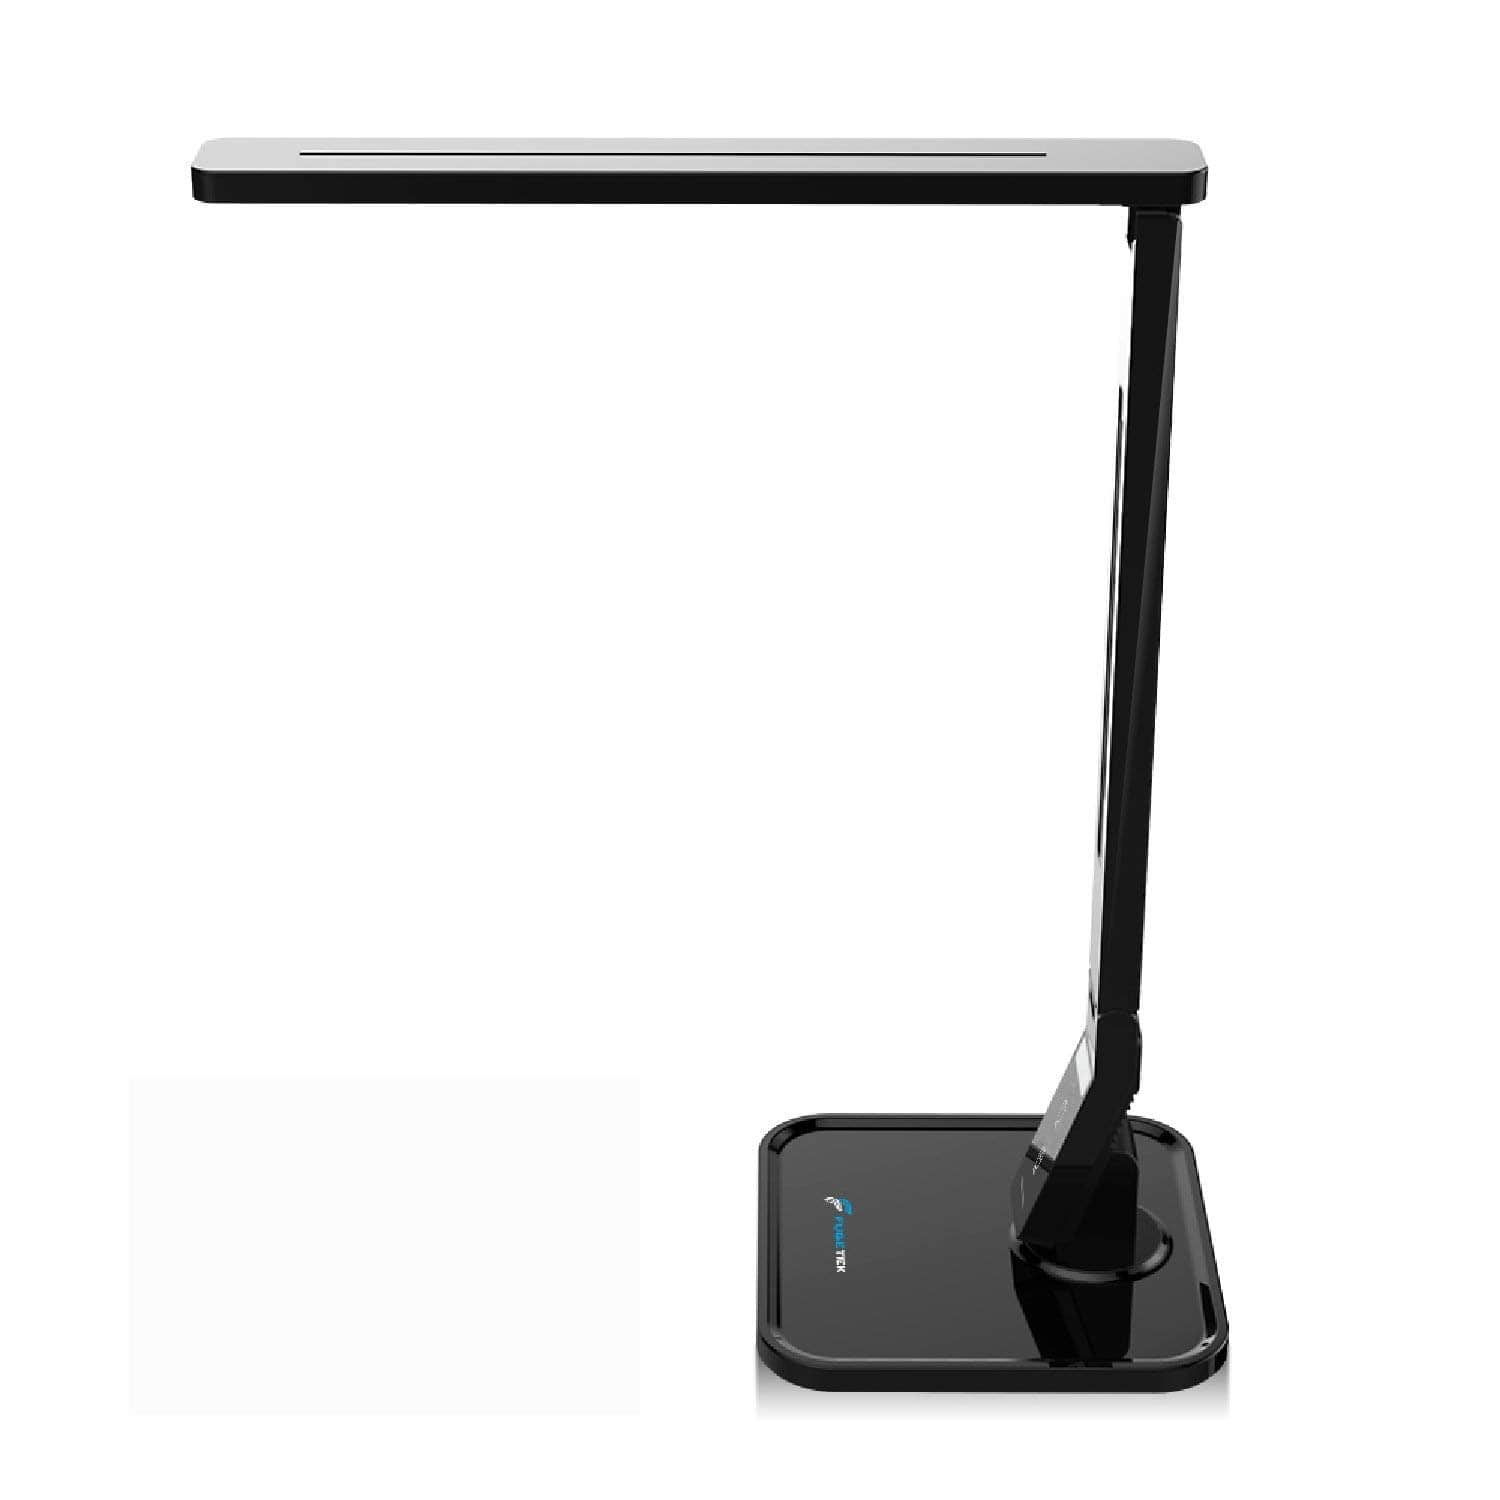 LED Table Desk Lamp Fugetek FT-768, 5-Levels Of Brightness, Touch Control Panel, 550 Lumen, 1-Hour Auto Timer $13.49